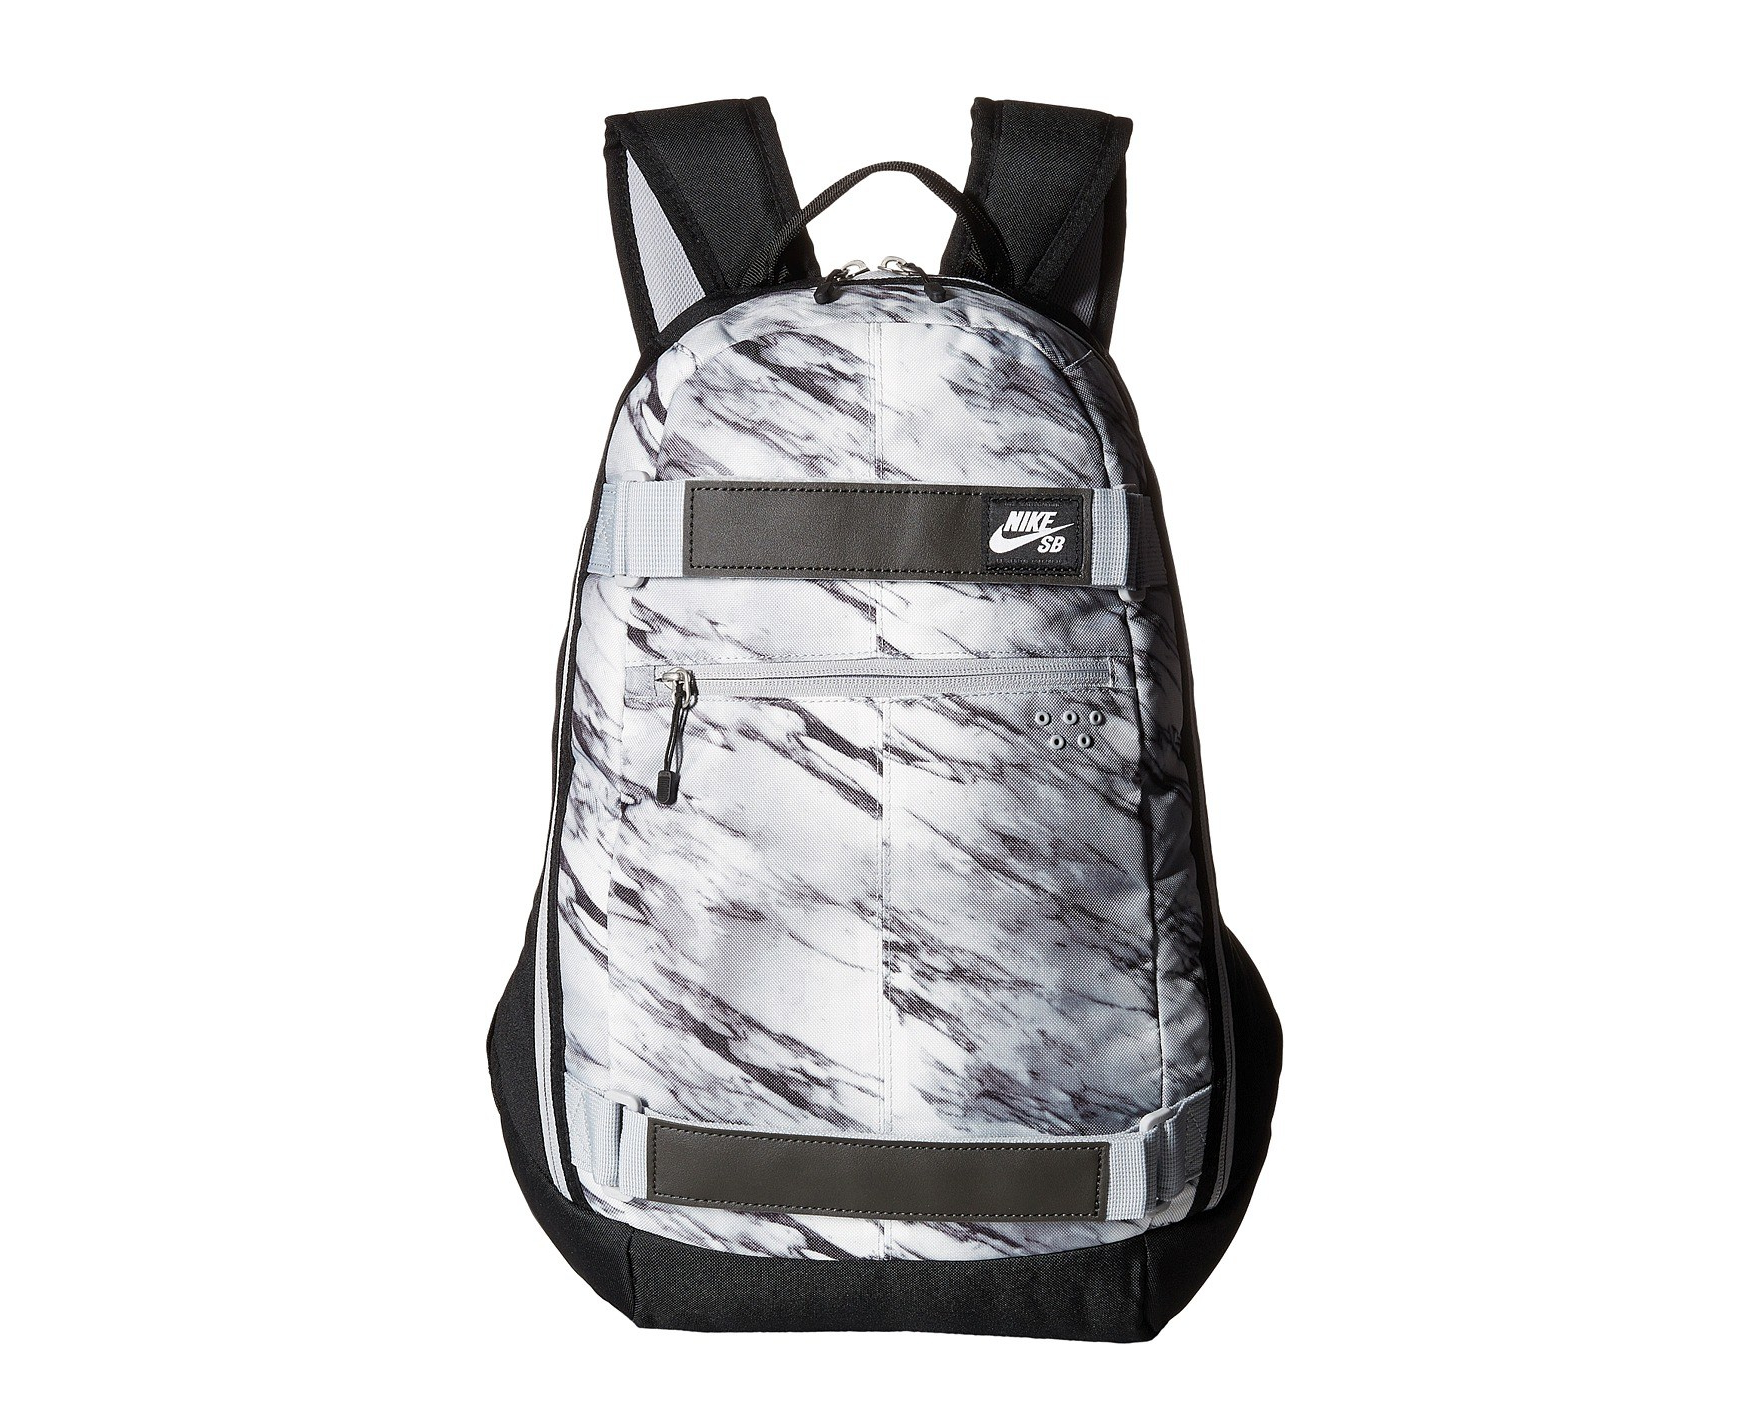 Nike SB embarca medium backpack - white marble